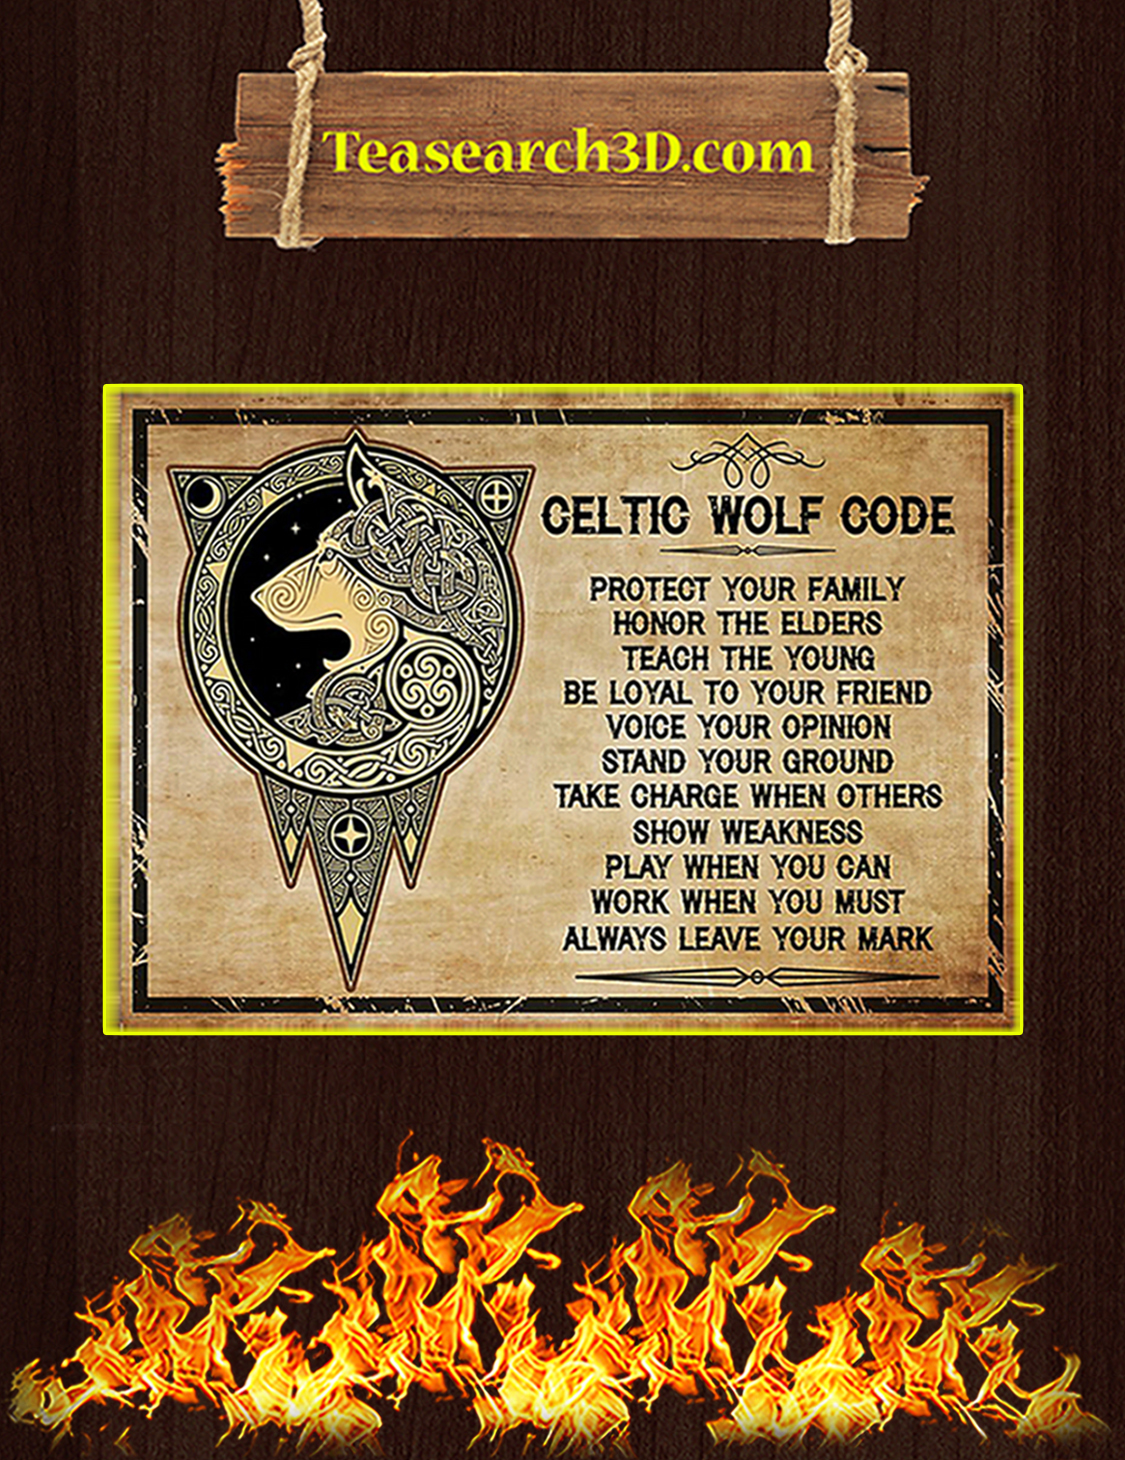 Celtic wolf code poster A3